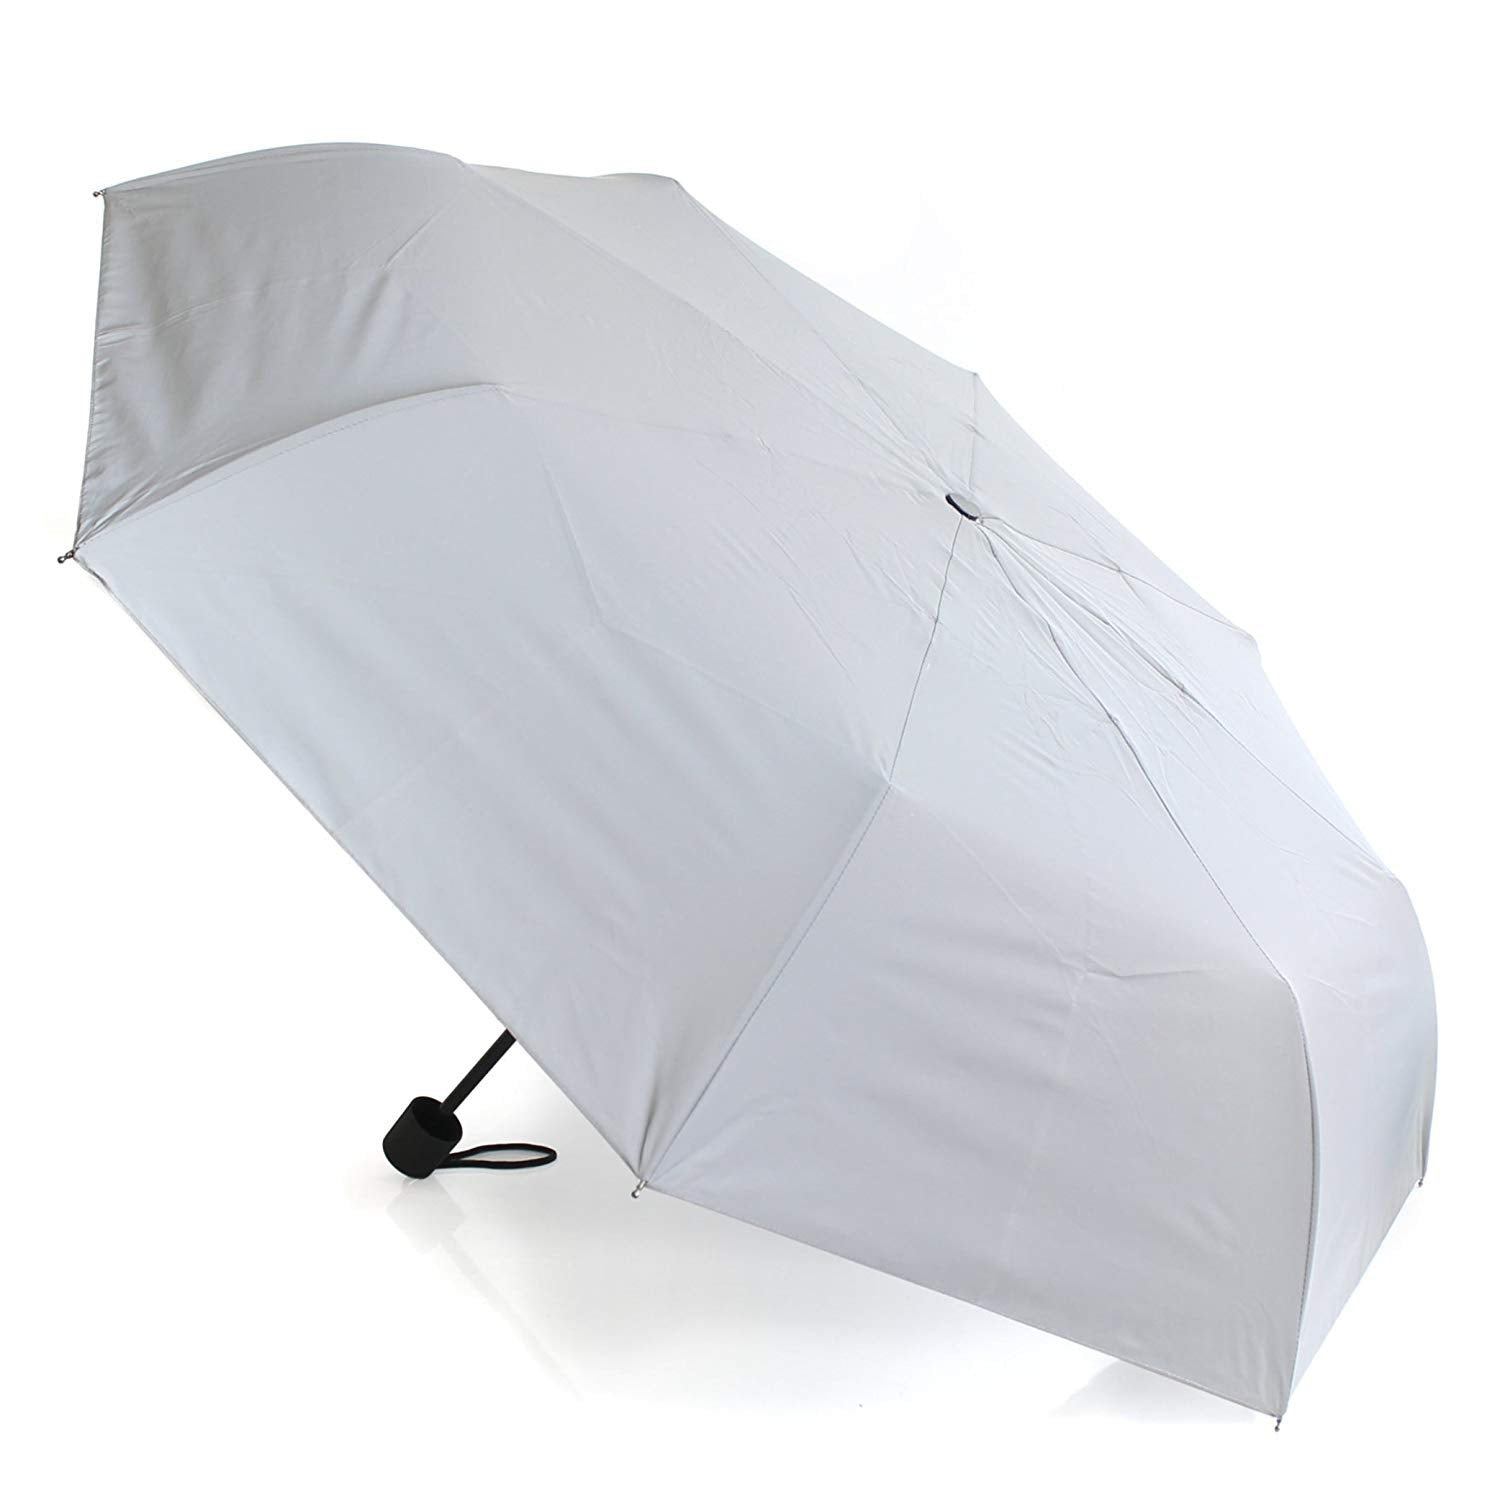 Suck UK Hi-Reflective Umbrella